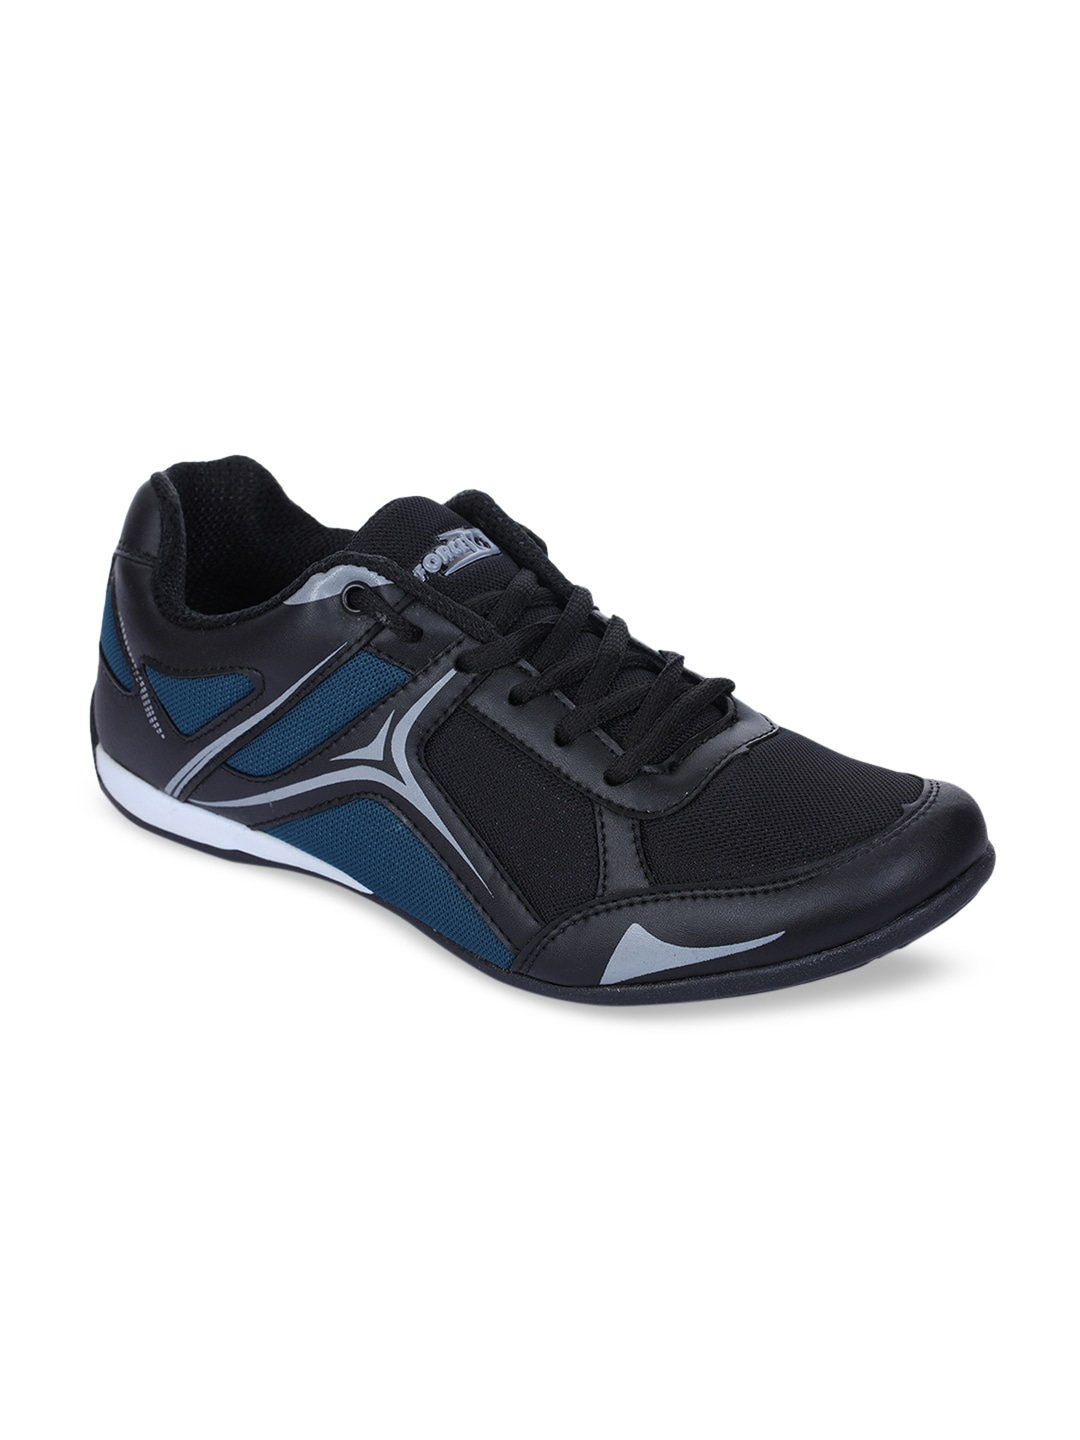 Black PU and Canvas Running Shoes